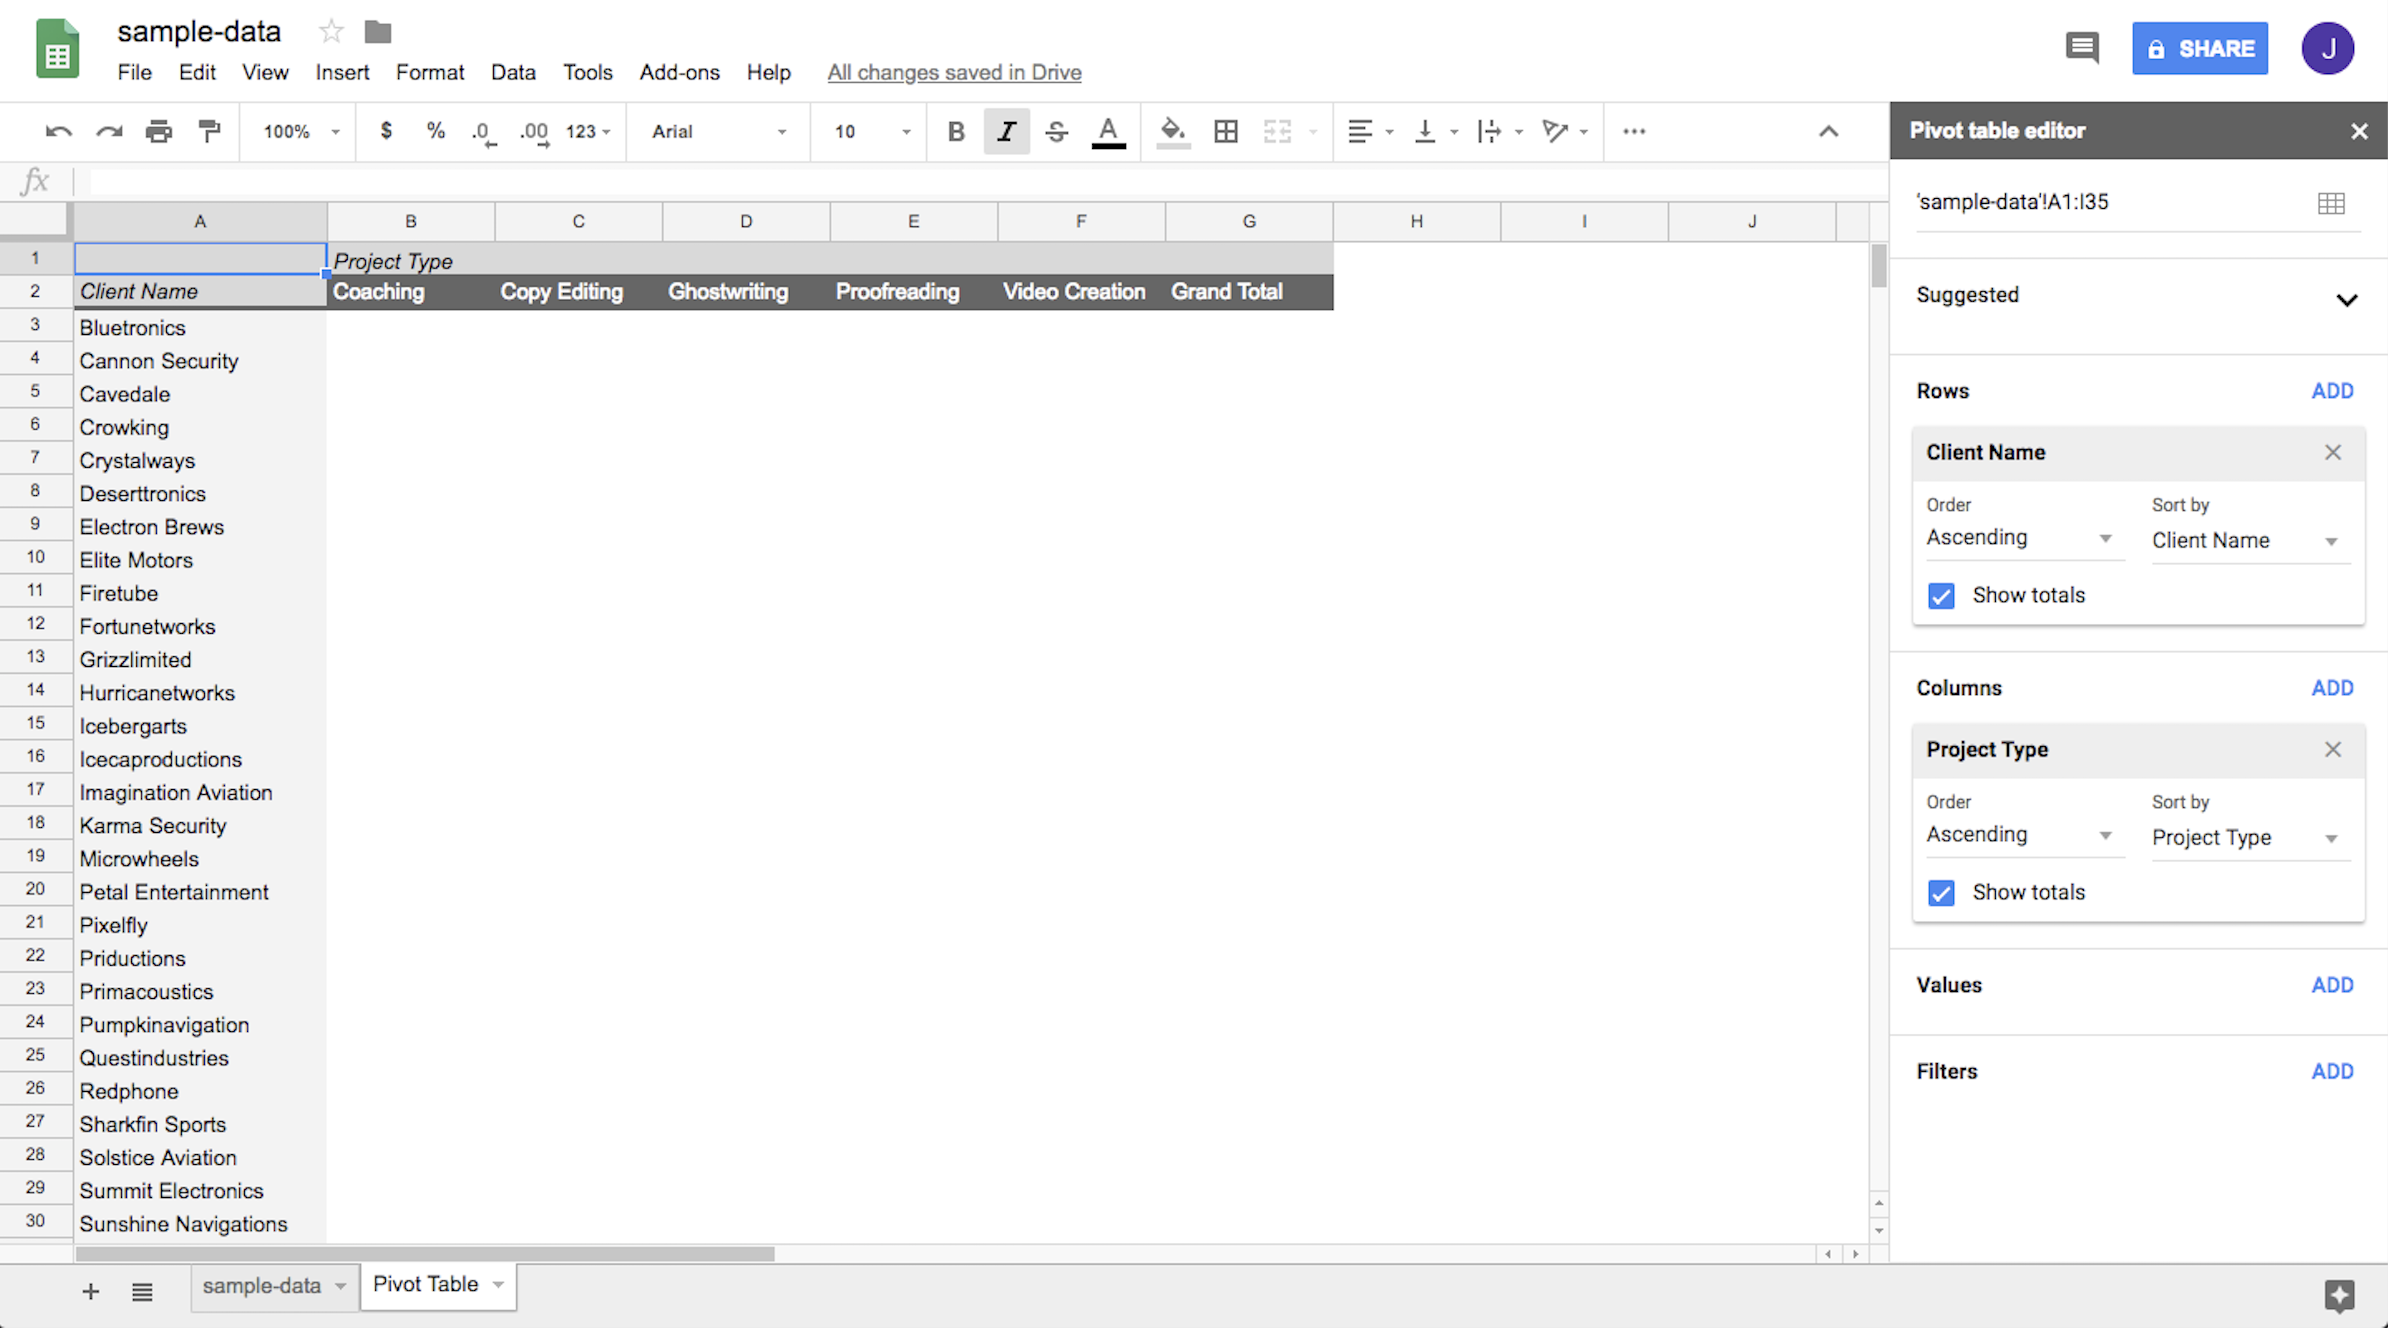 Adding project type as a column into the pivot table